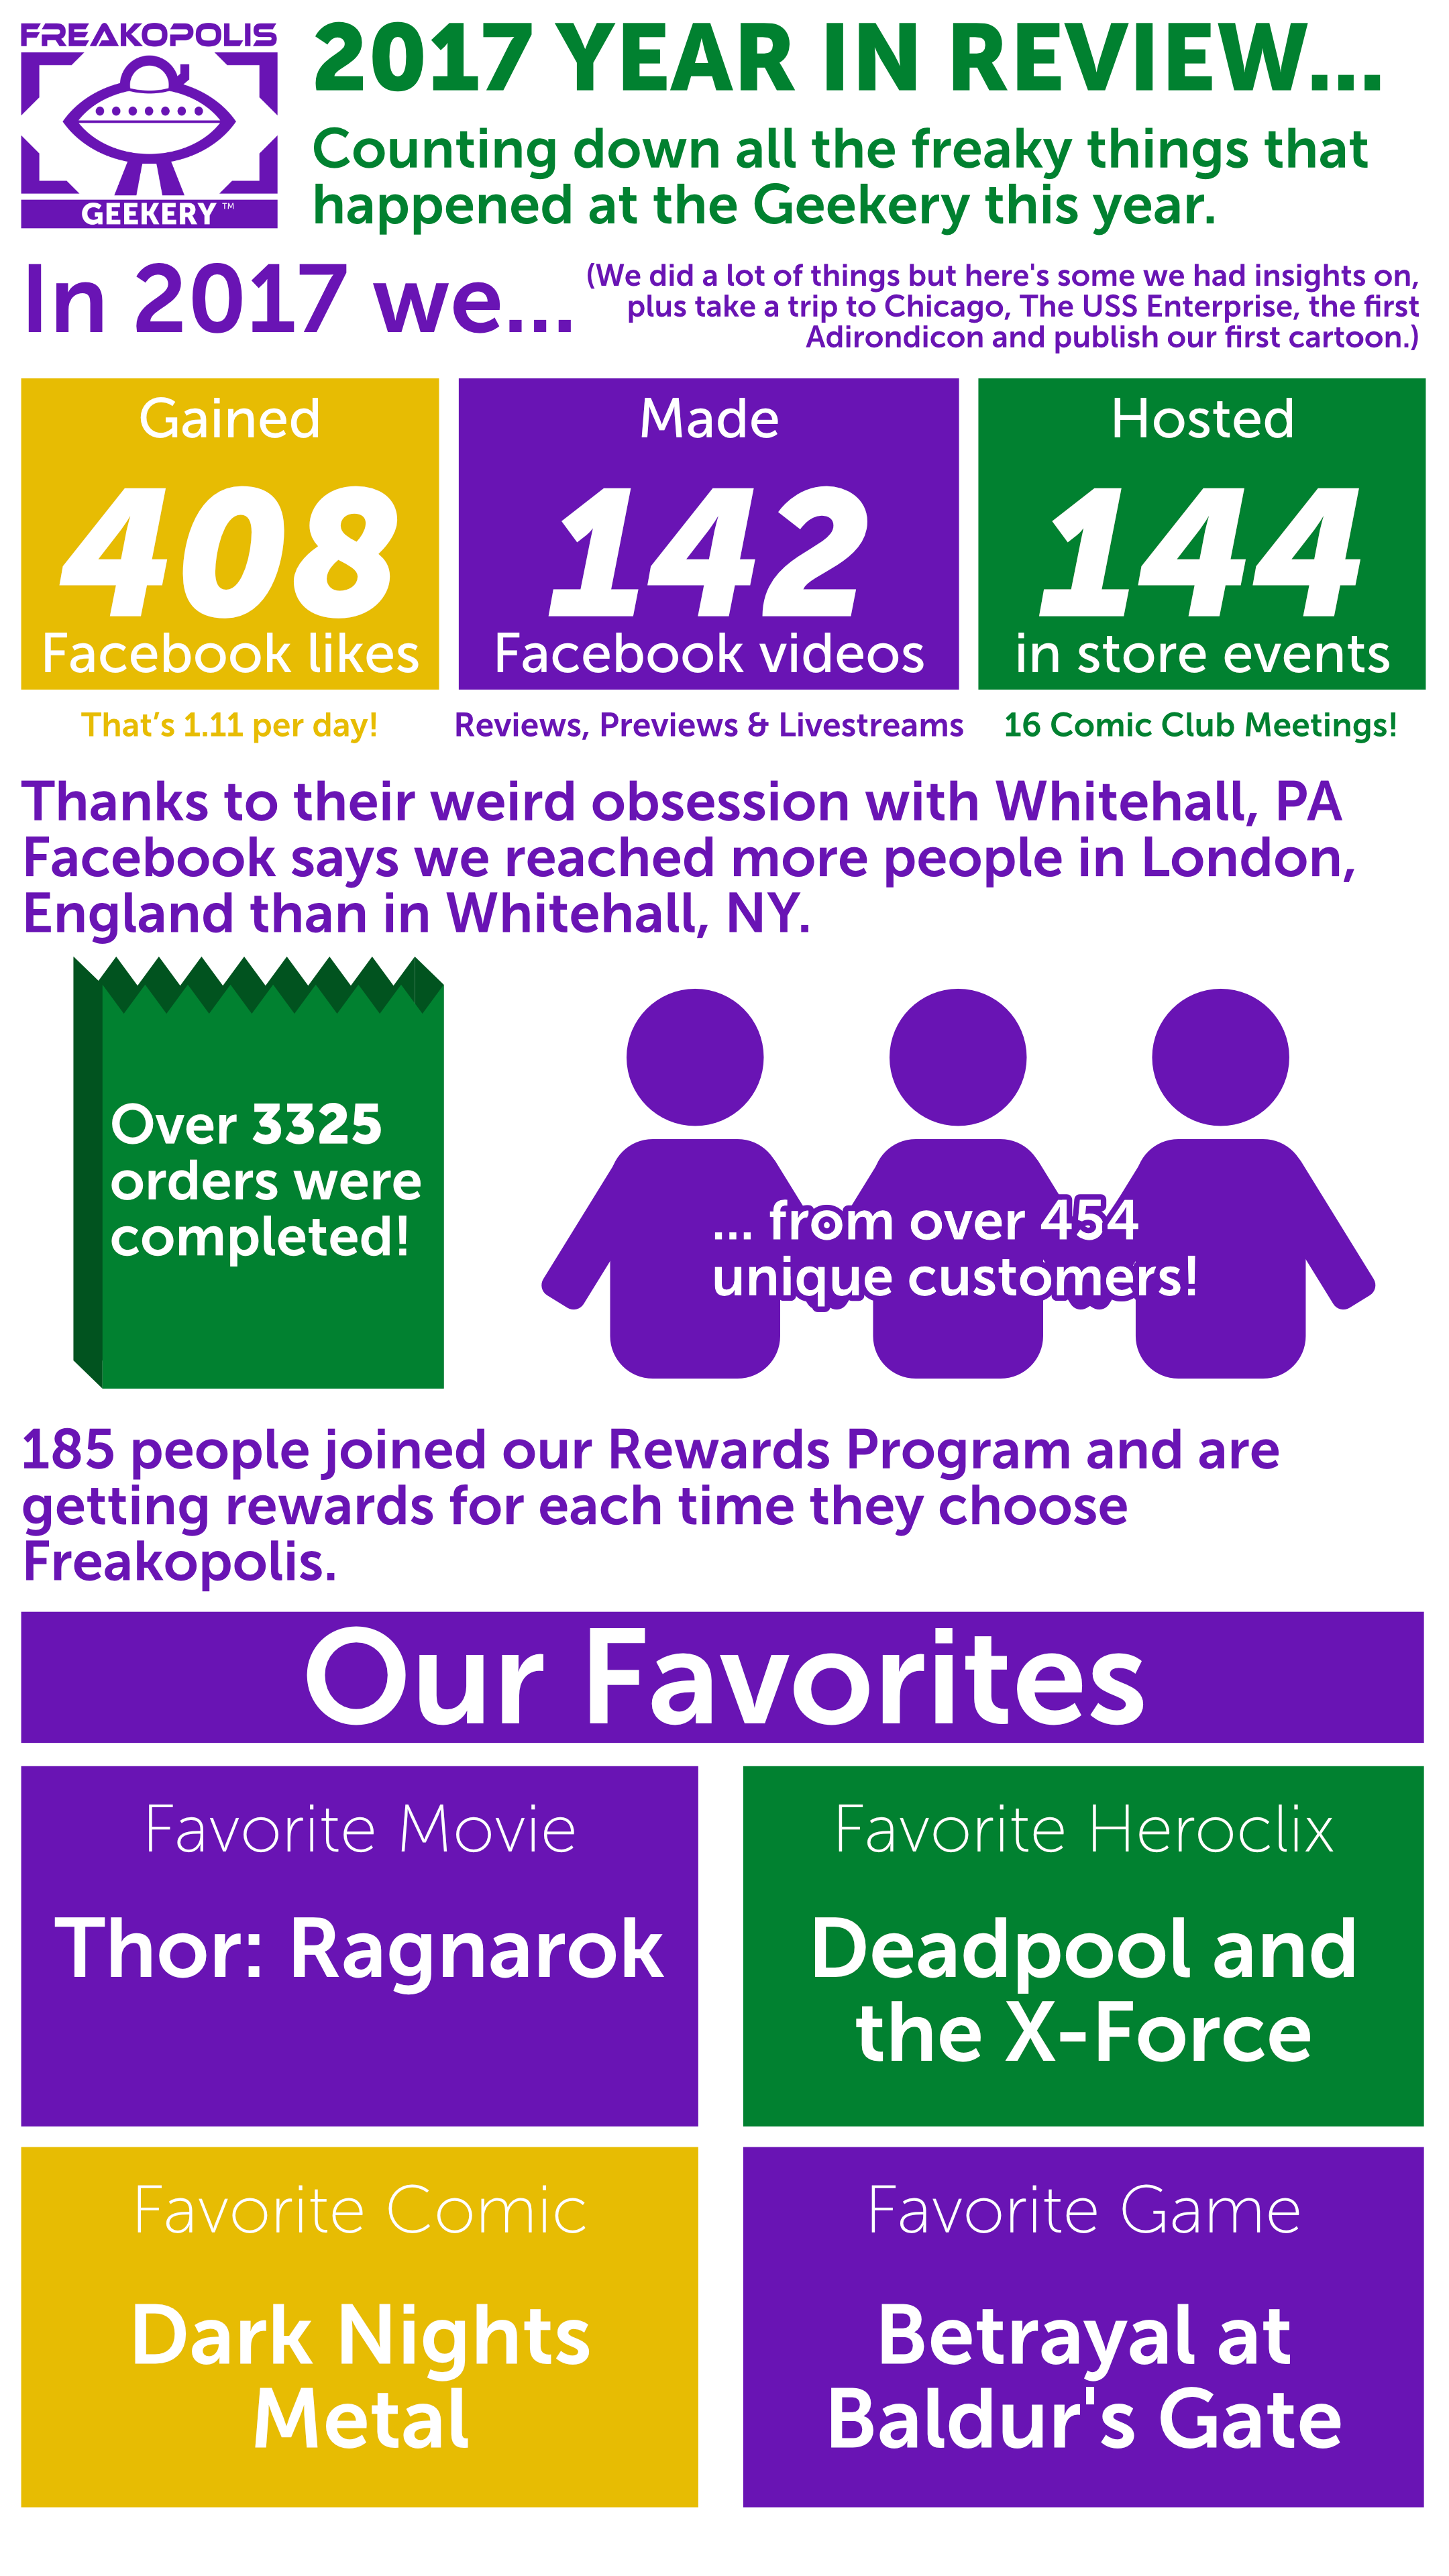 Freakopolis' 2017 Year In Review Infographic